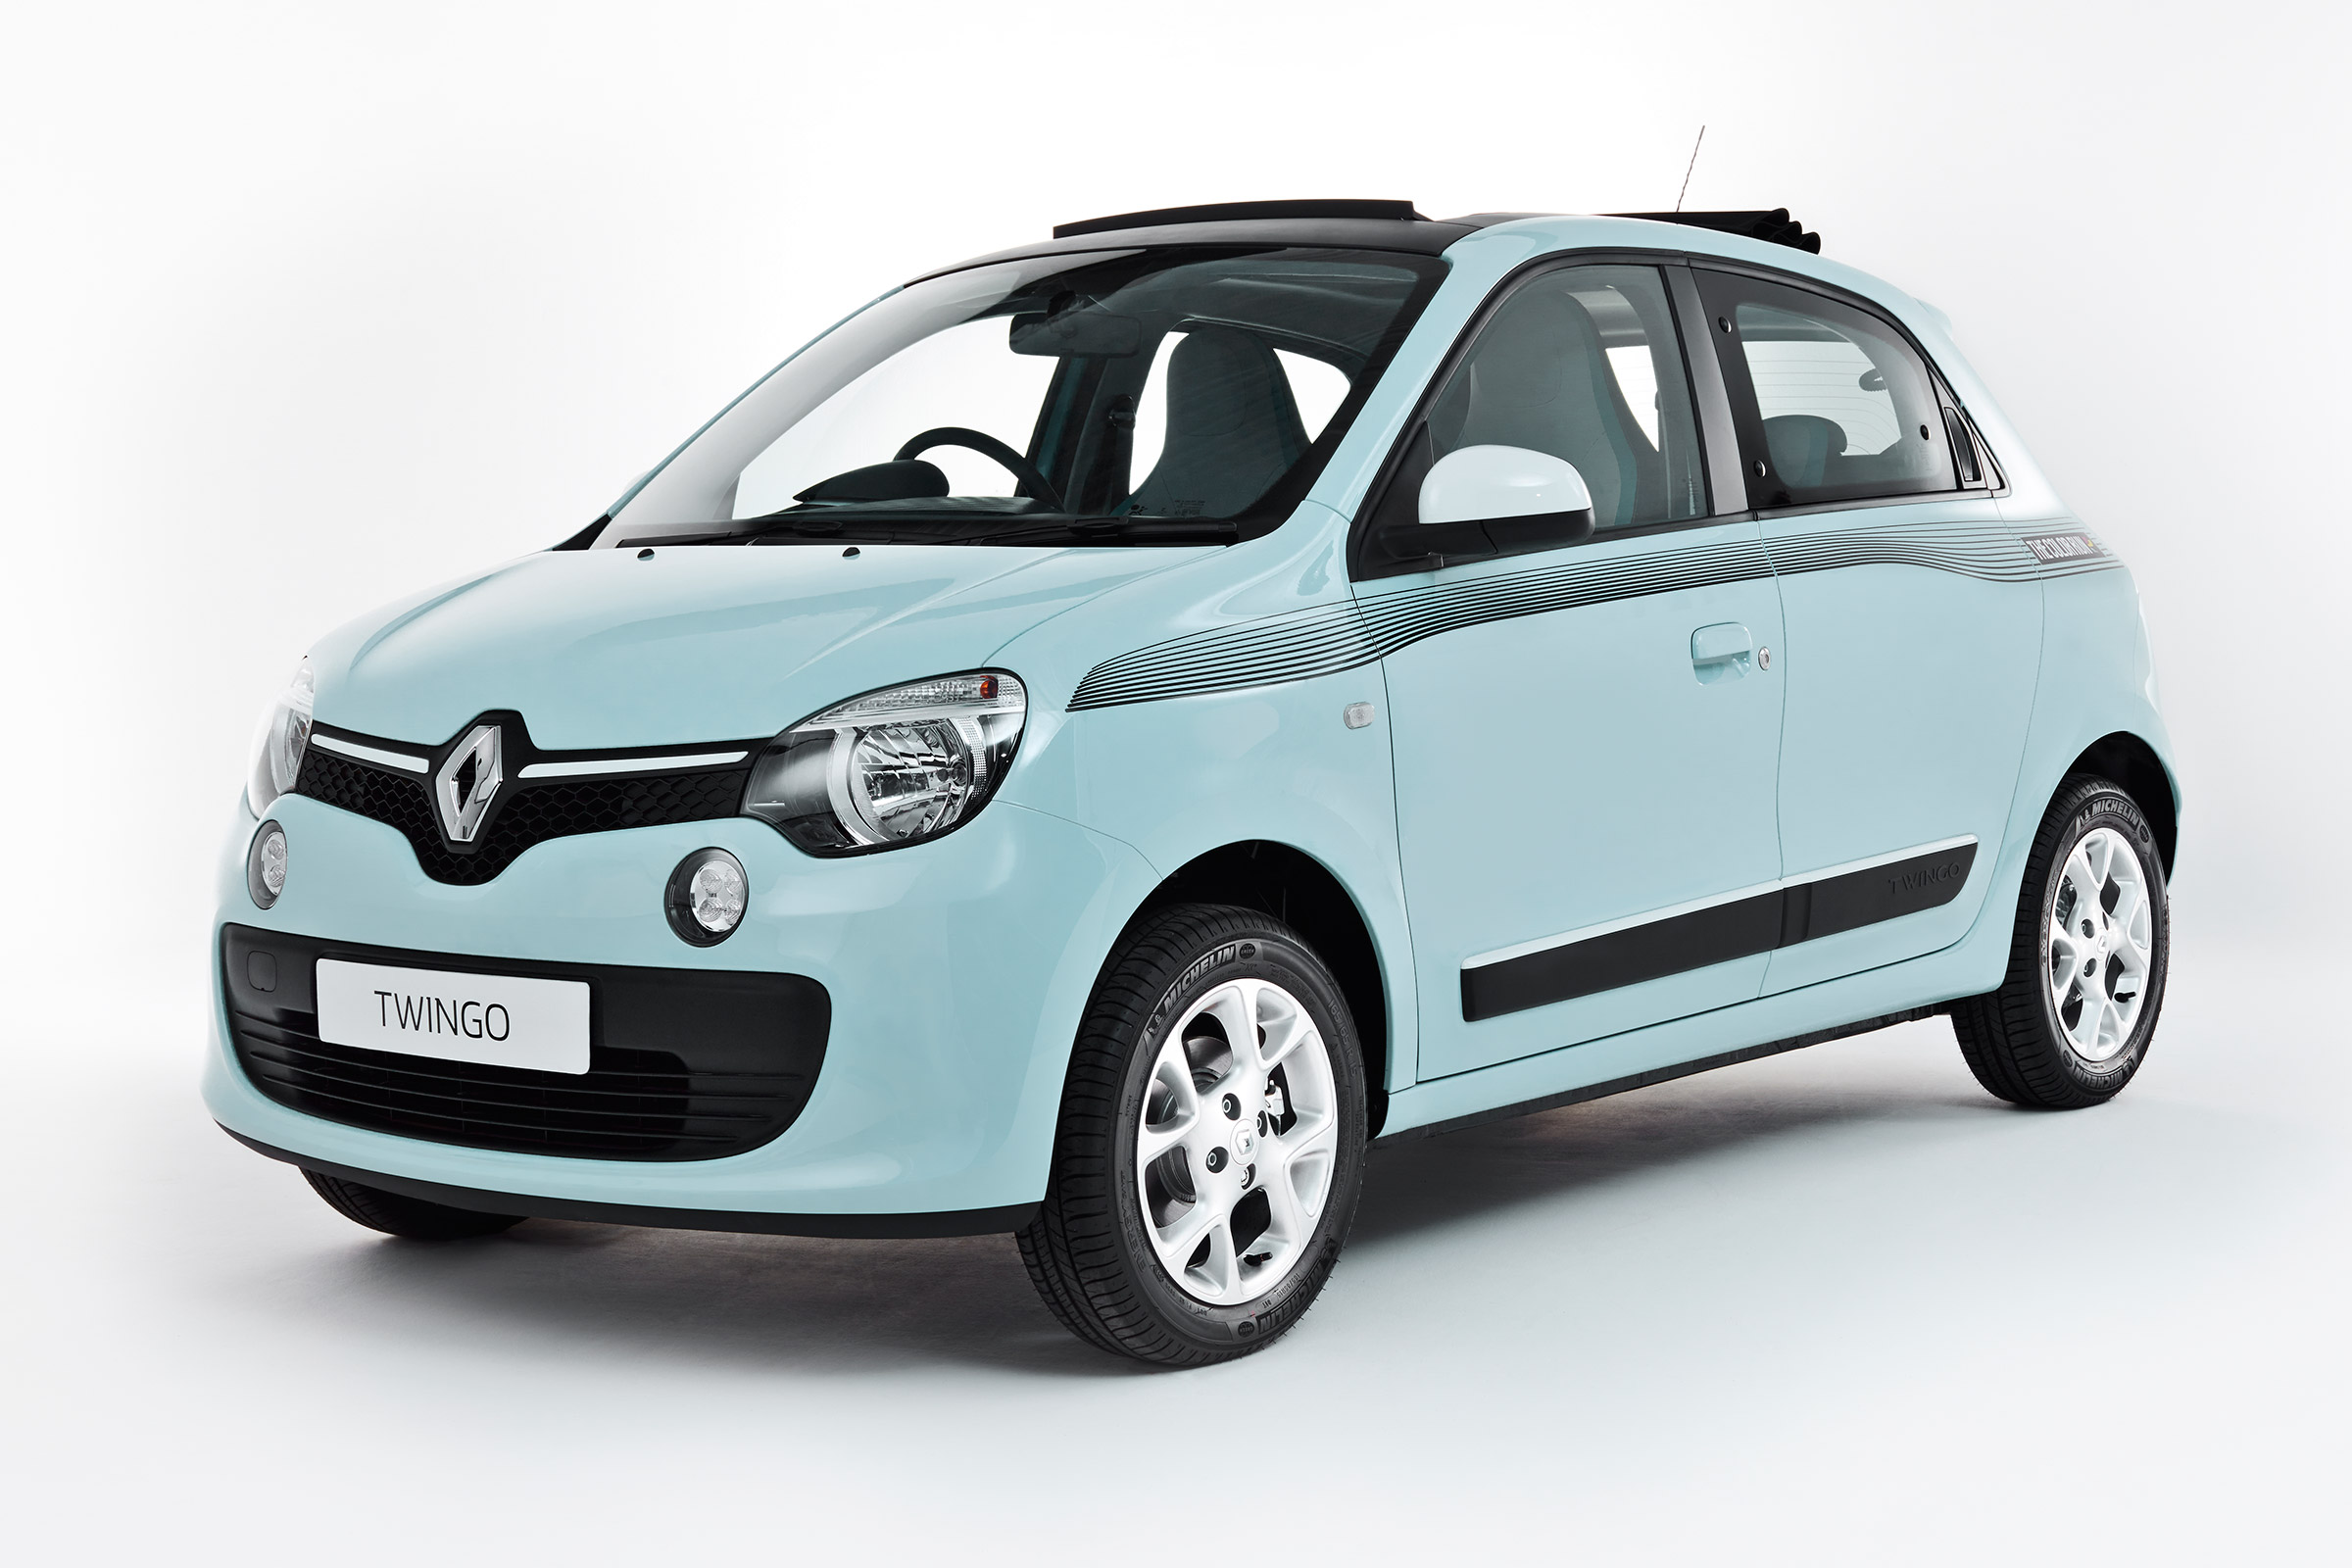 Renault Uk Official Dds Car Sales Twingo Special Offer